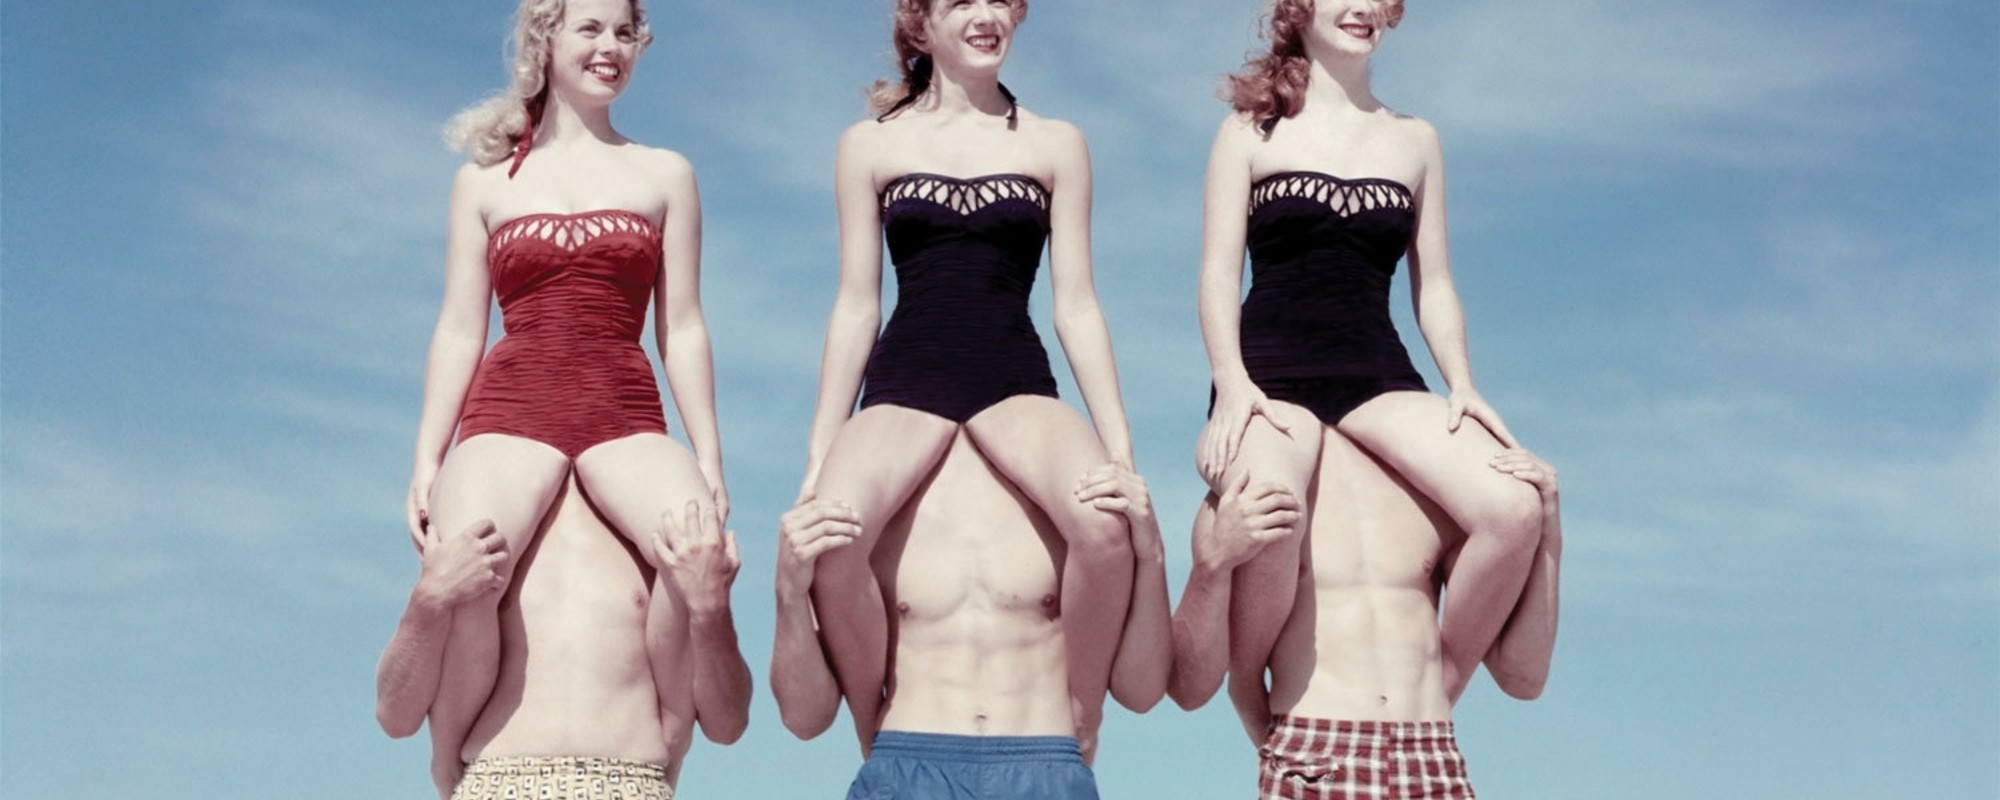 These Doctored Vintage Photos Will Make You Wonder if All Your Childhood Memories Are Lies